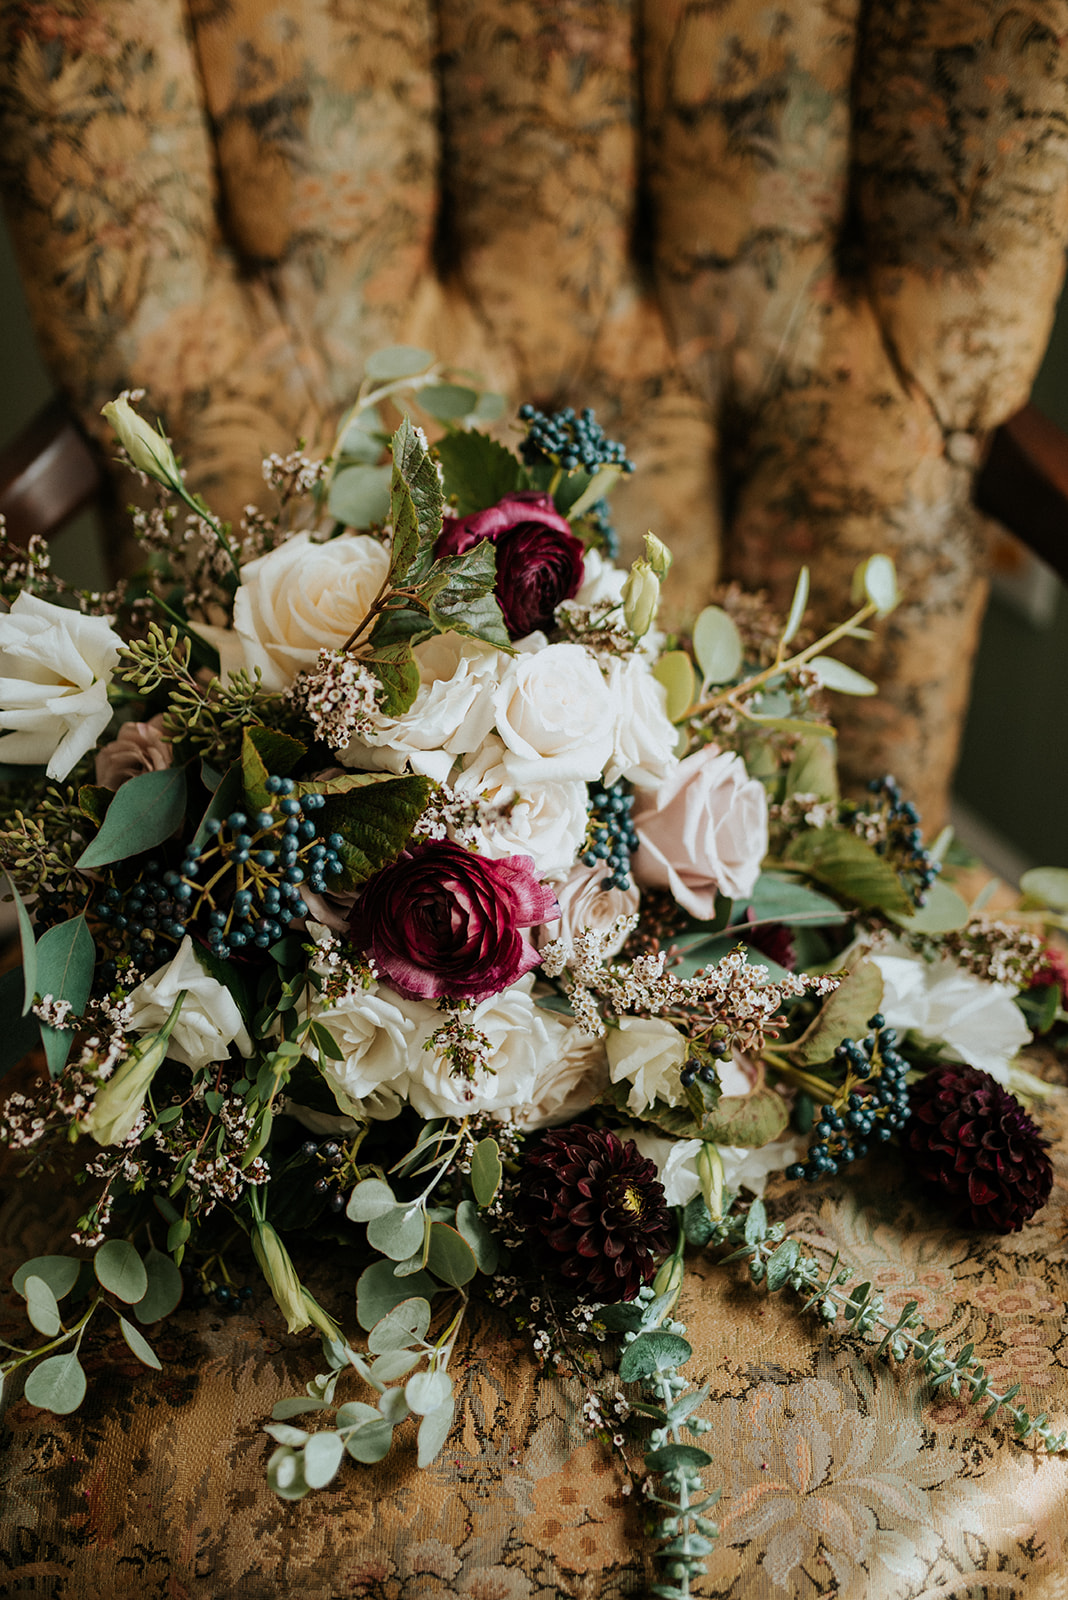 overthevineswisconsinwedding_0175.jpg